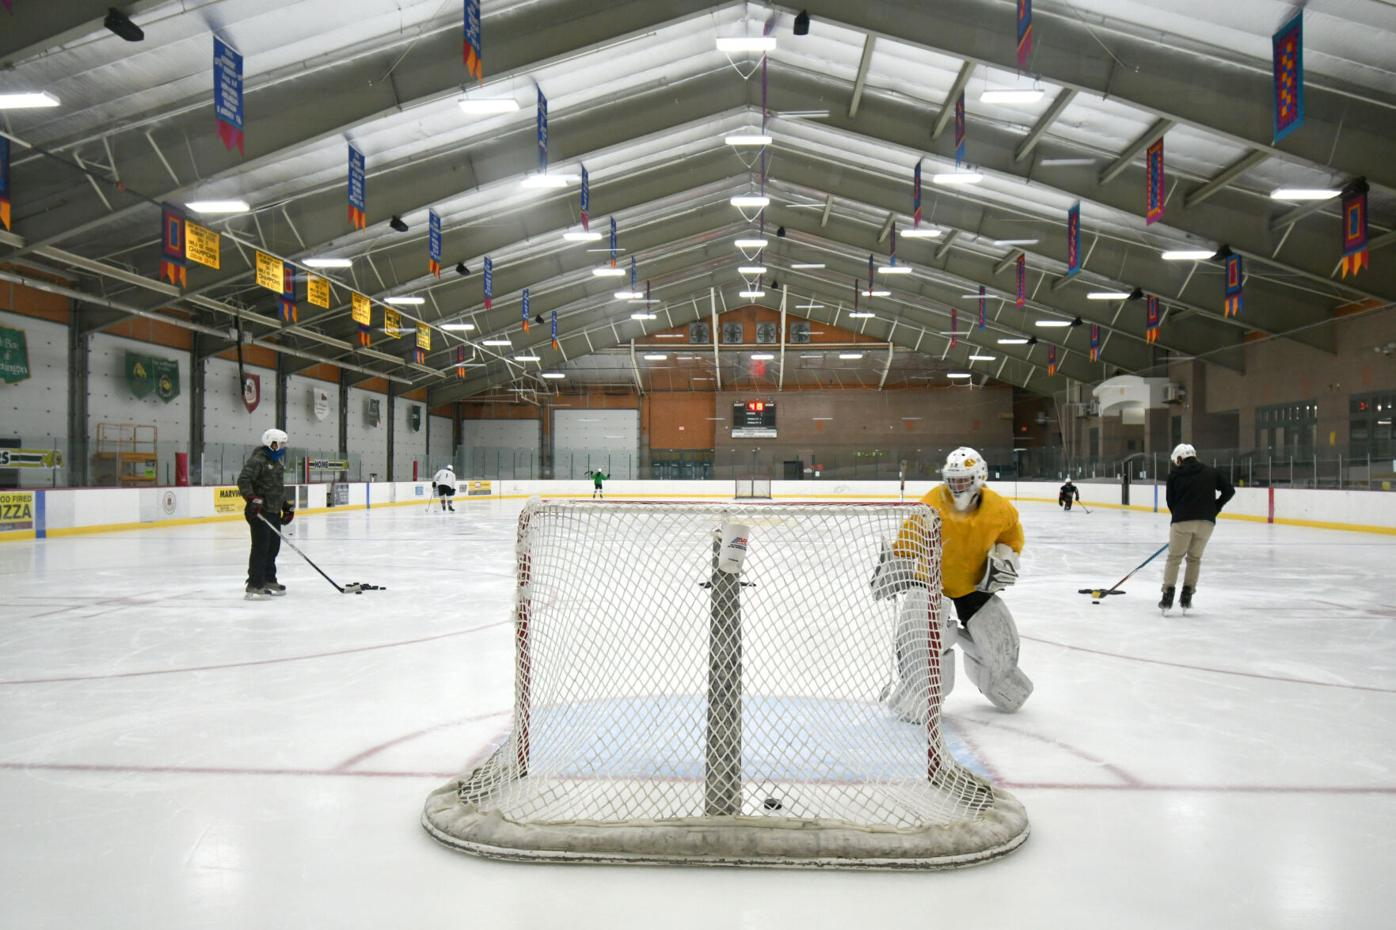 Riley Rink resumes operations